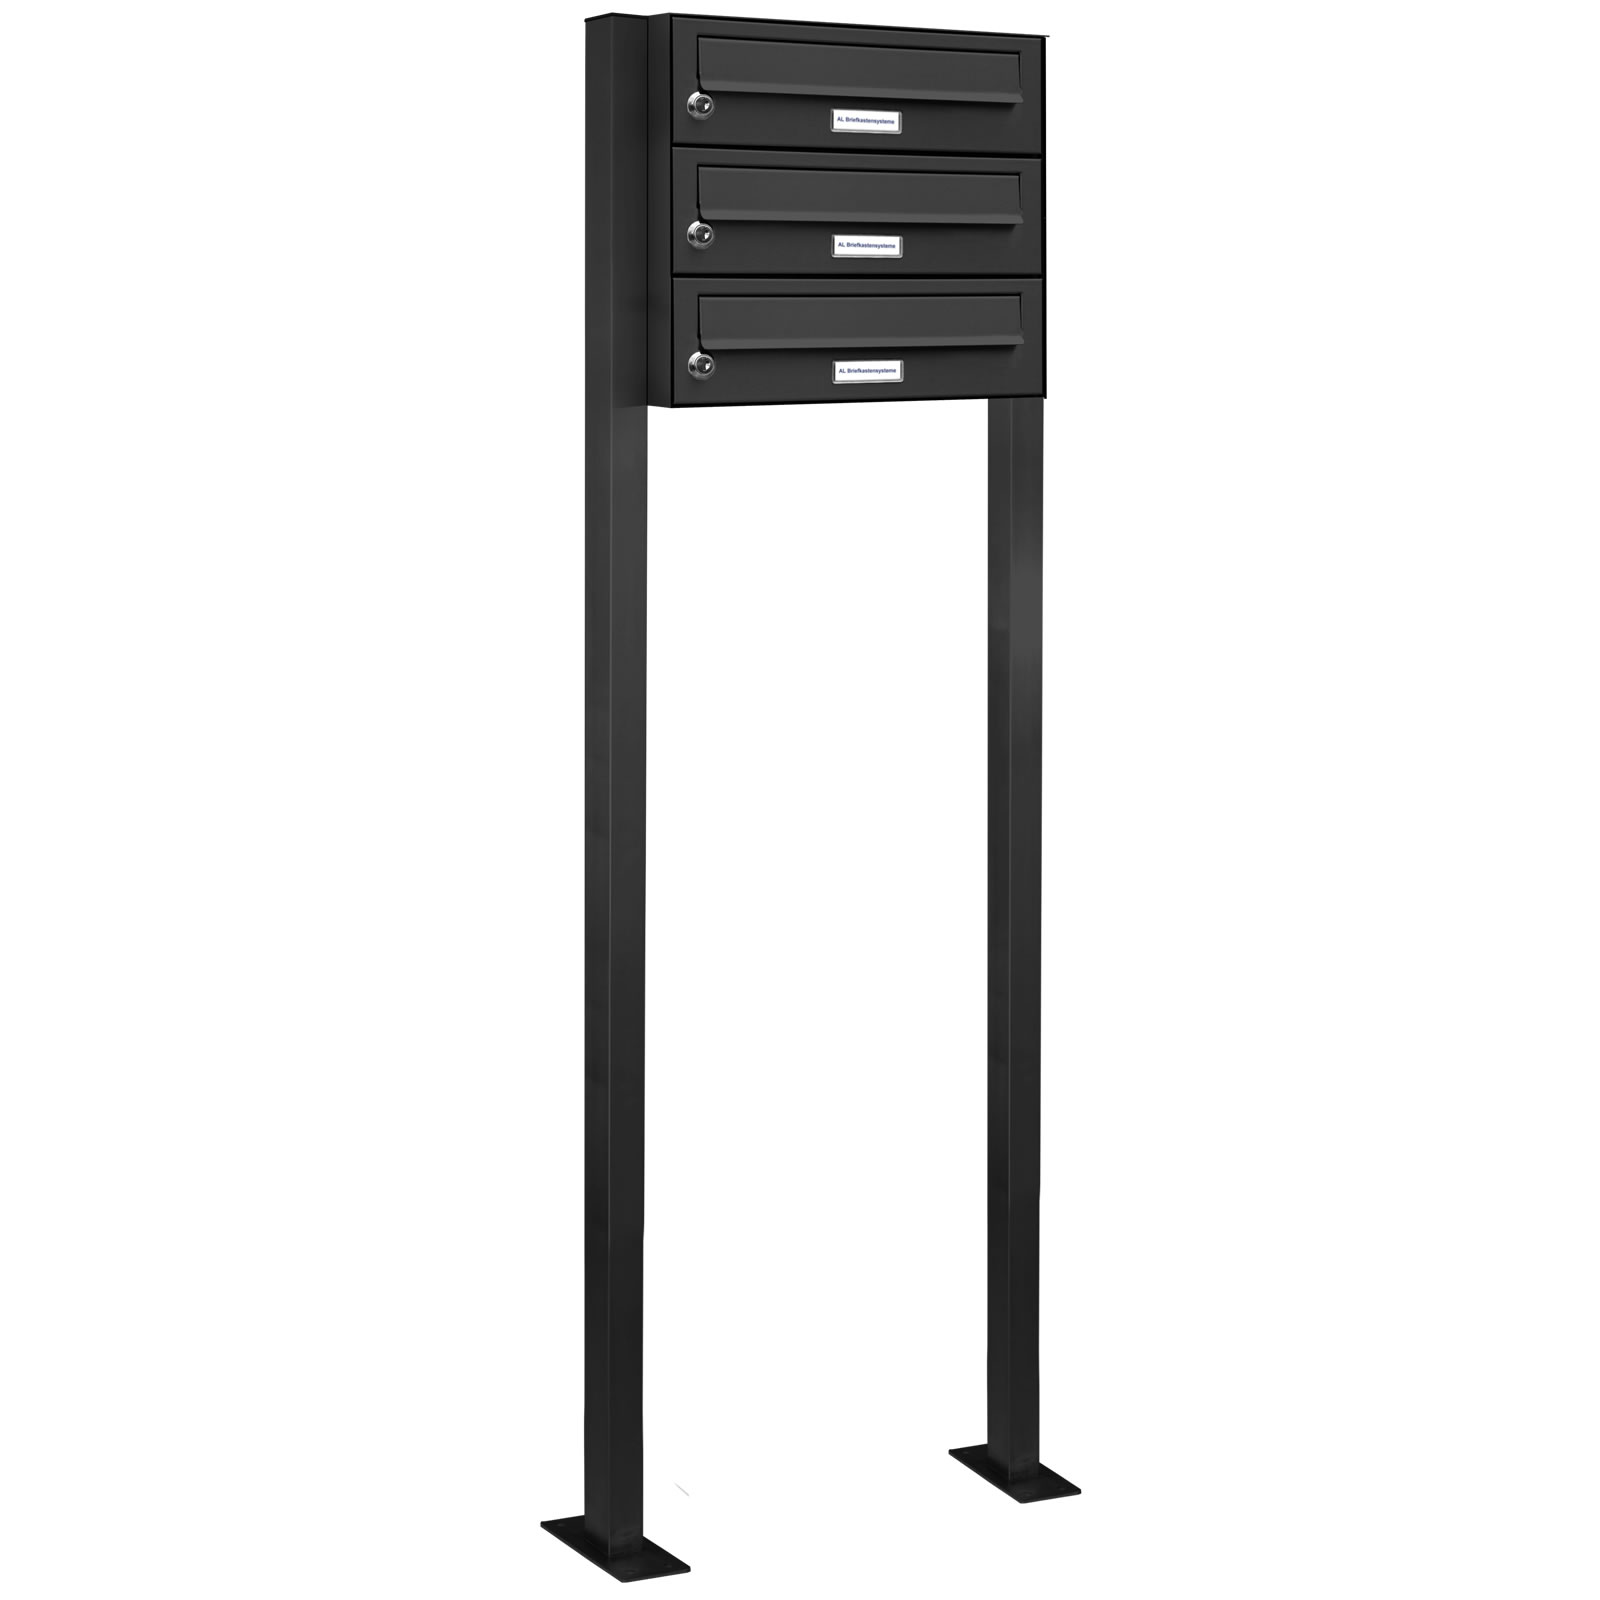 3er standbriefkasten anlage freistehend ral 7016 anthrazit ebay. Black Bedroom Furniture Sets. Home Design Ideas